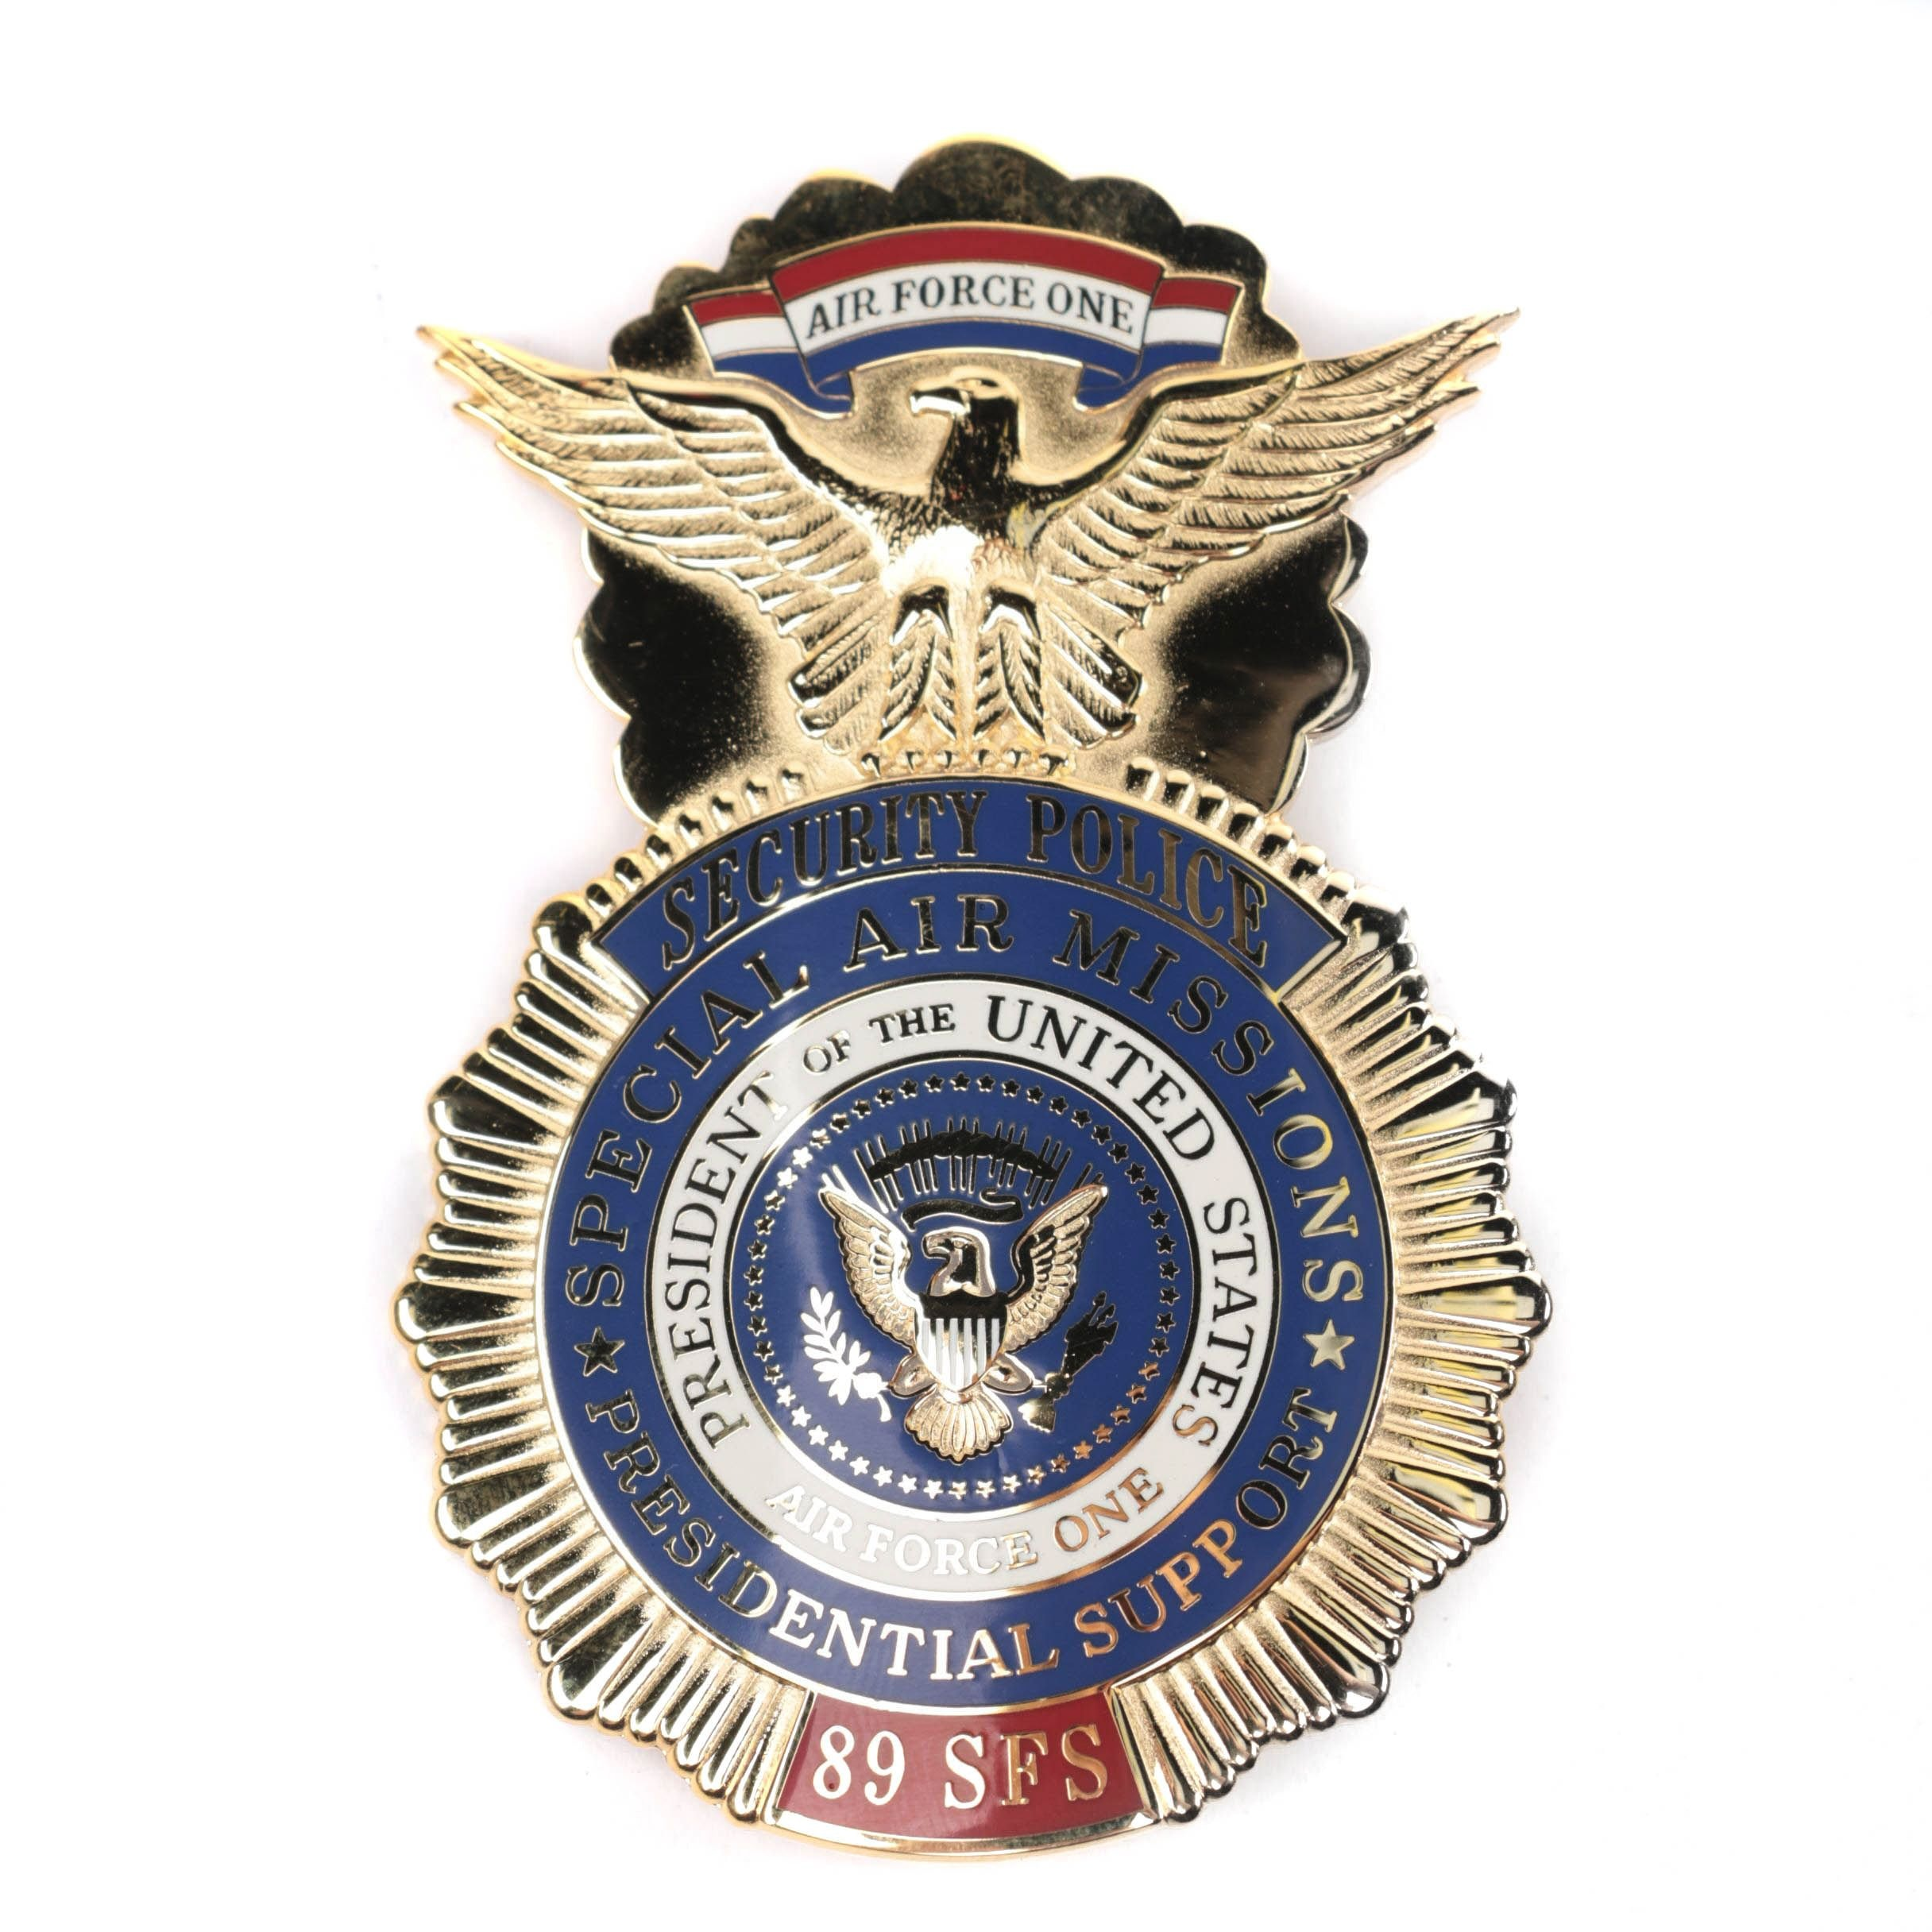 Air Force One Badge